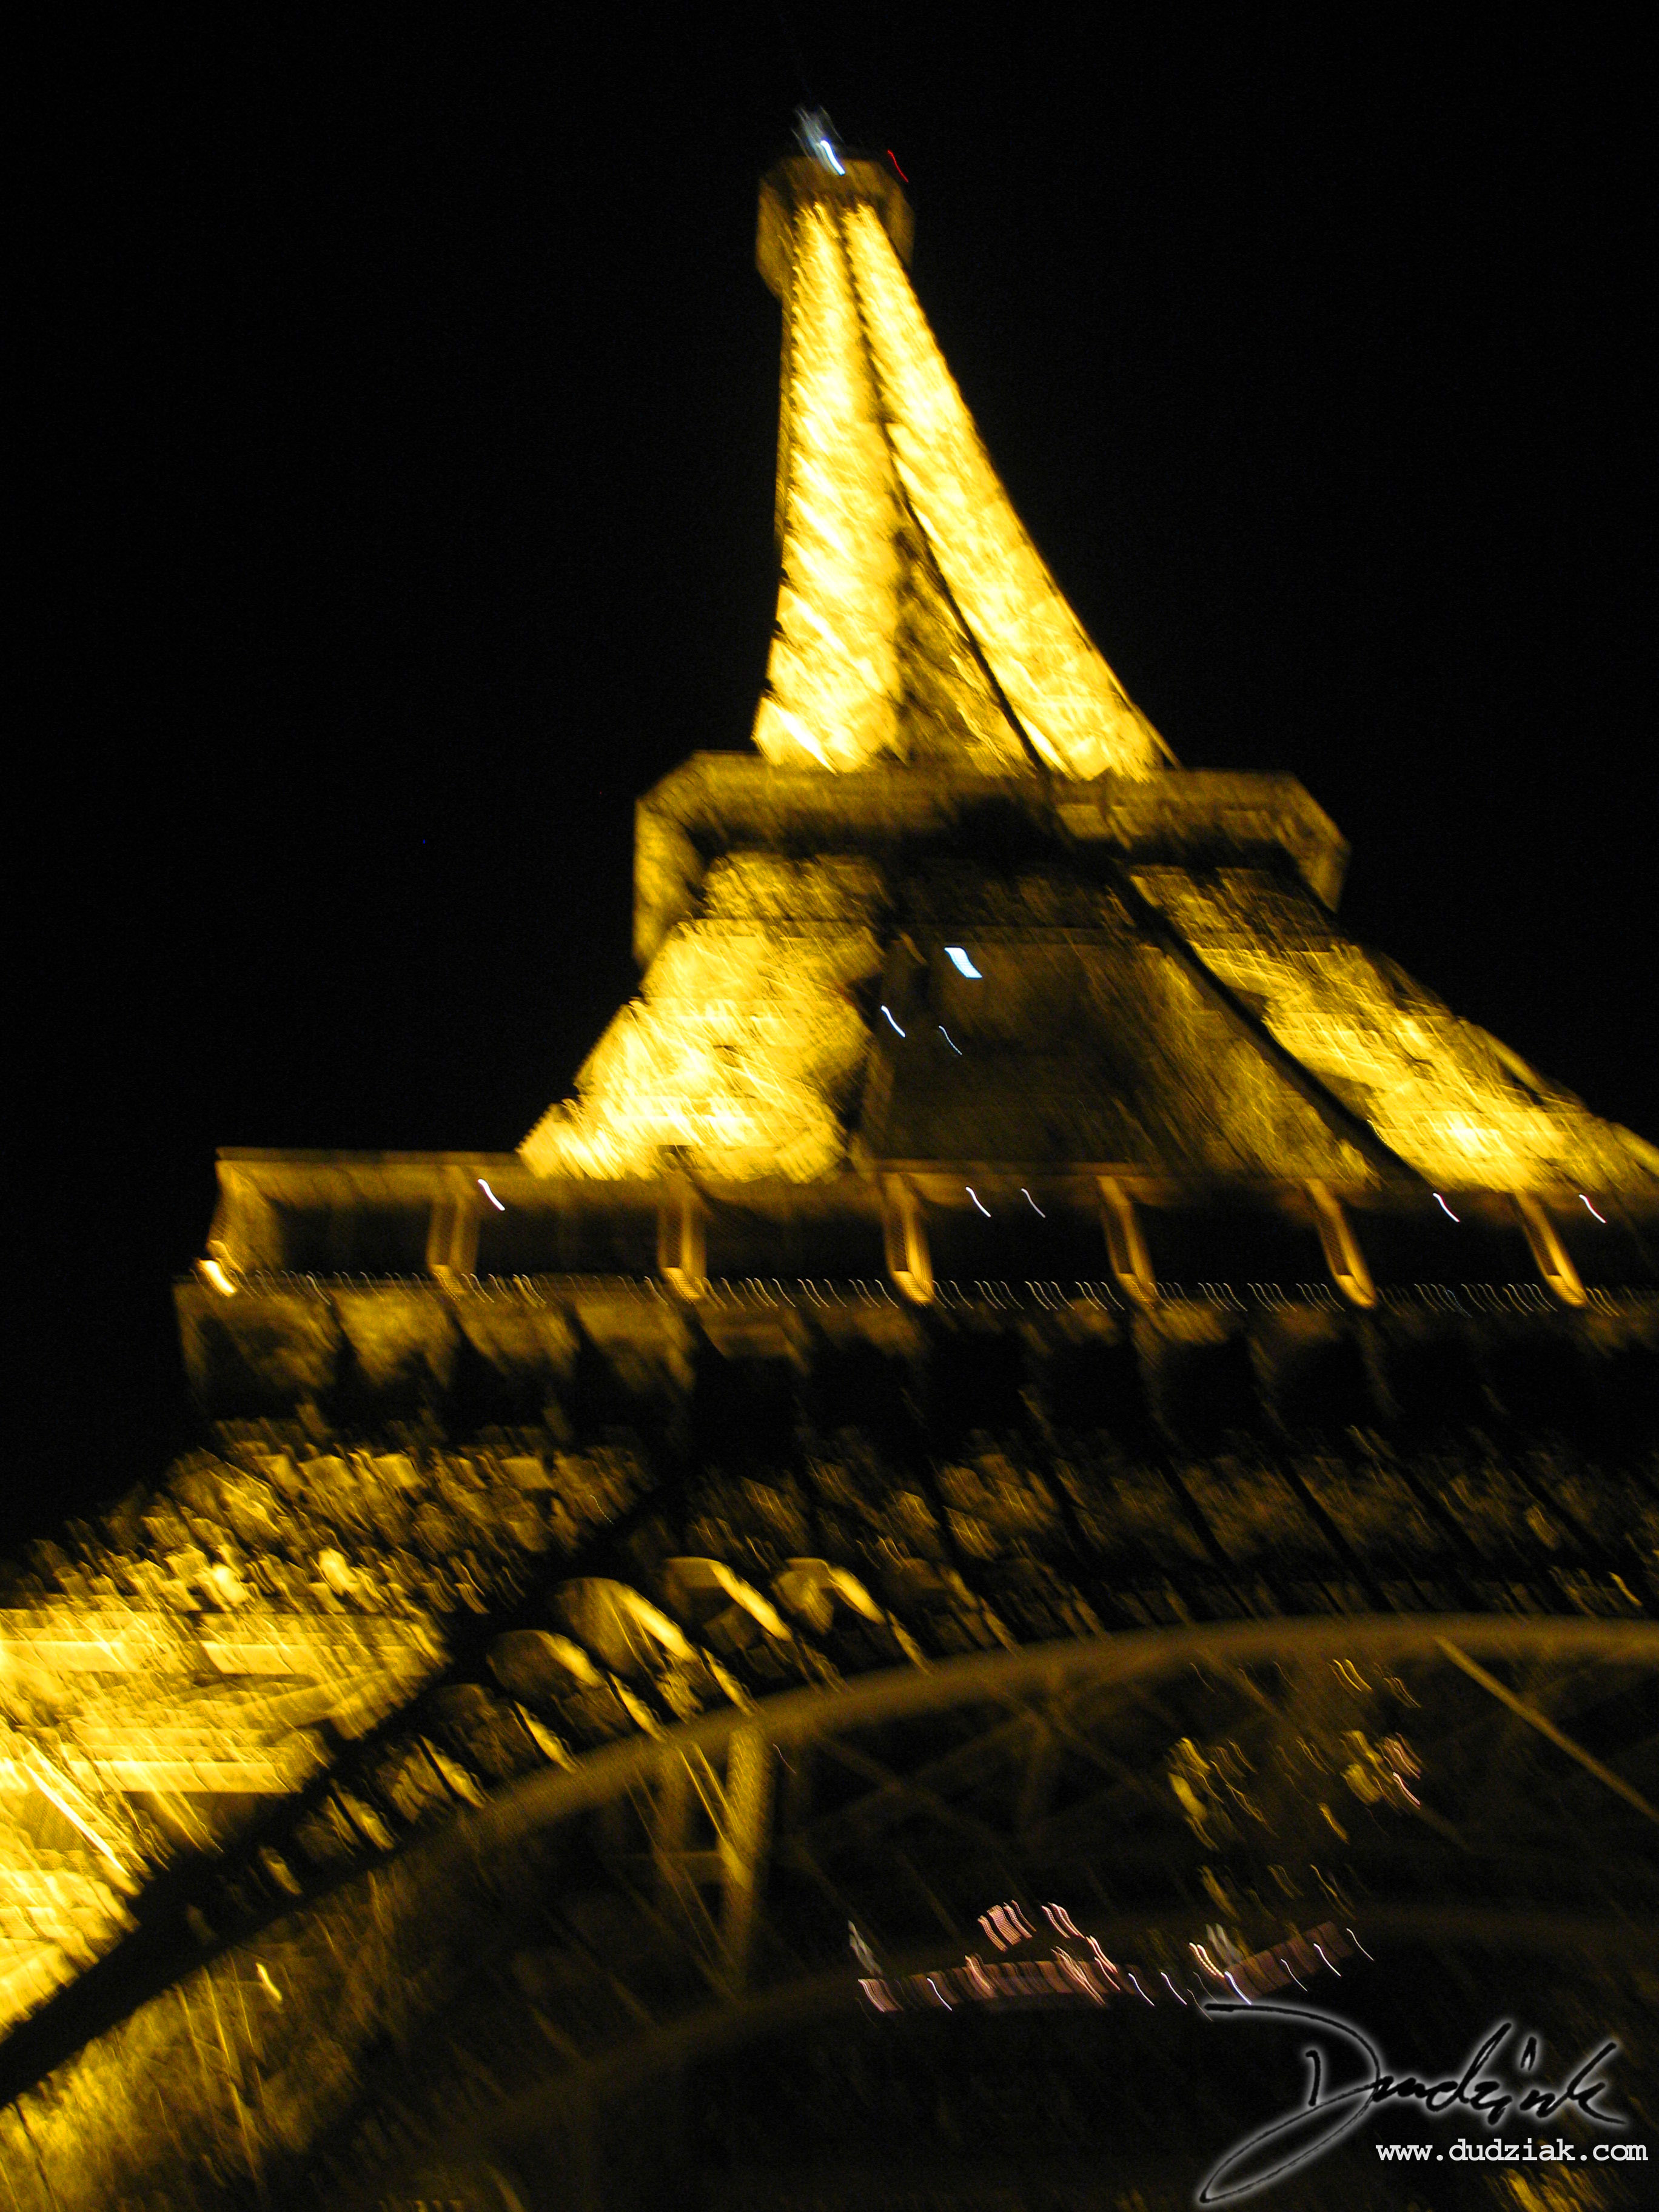 Night,  Eiffel Tower,  Blurry,  Paris France,  Bastille Day